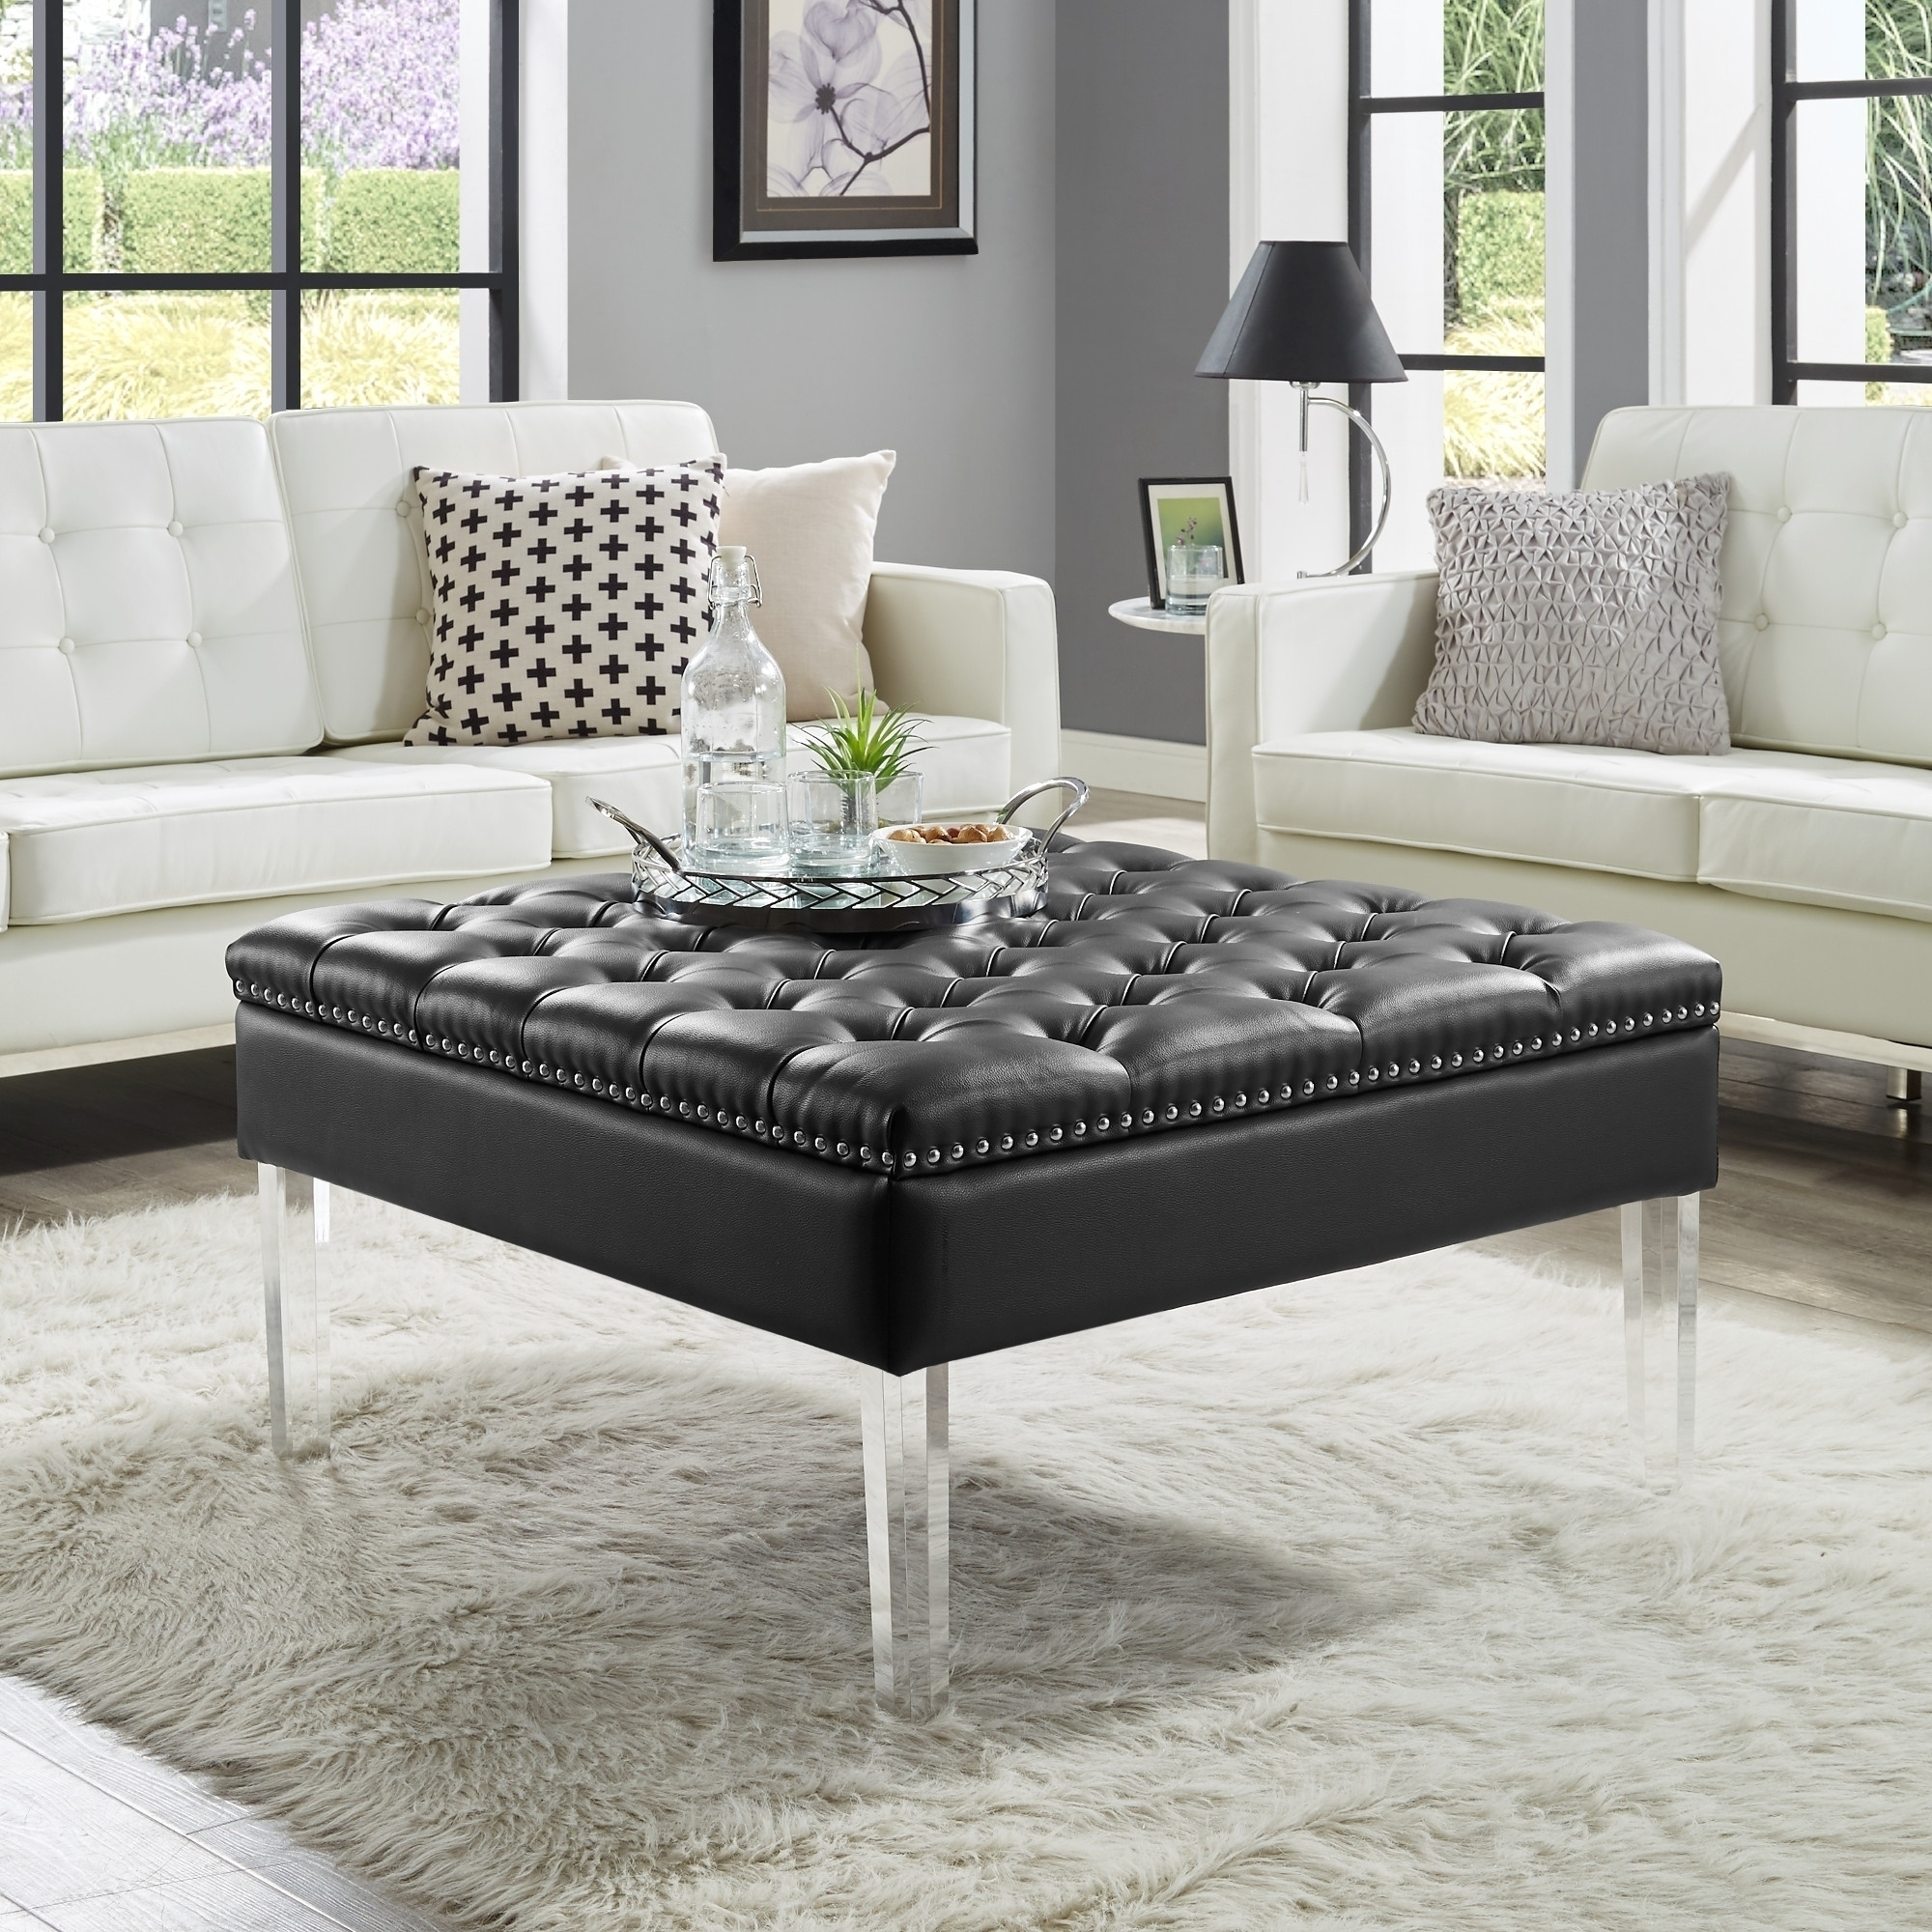 Vivian Leather Oversized Button-Tufted Ottoman Coffee Table | Ebay pertaining to Button Tufted Coffee Tables (Image 30 of 30)